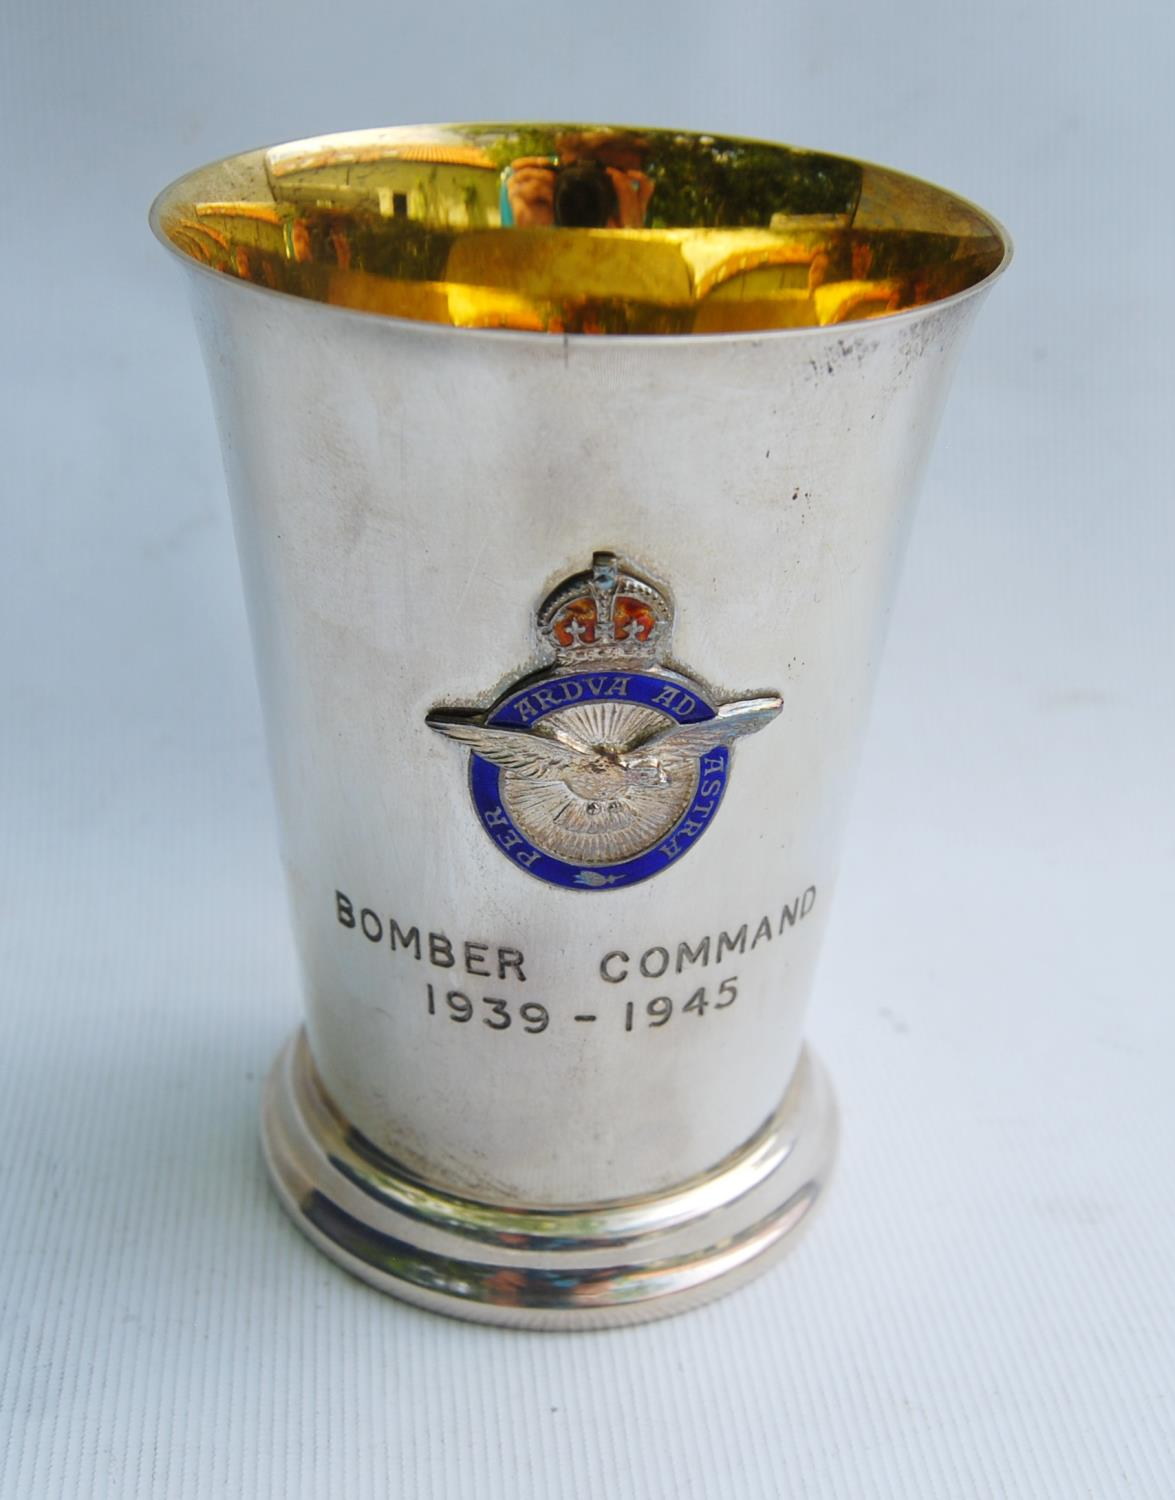 RAF silver beaker engraved, 'Bomber Command 1939-1945' with applied enamel badge and gilt lining, - Image 3 of 5